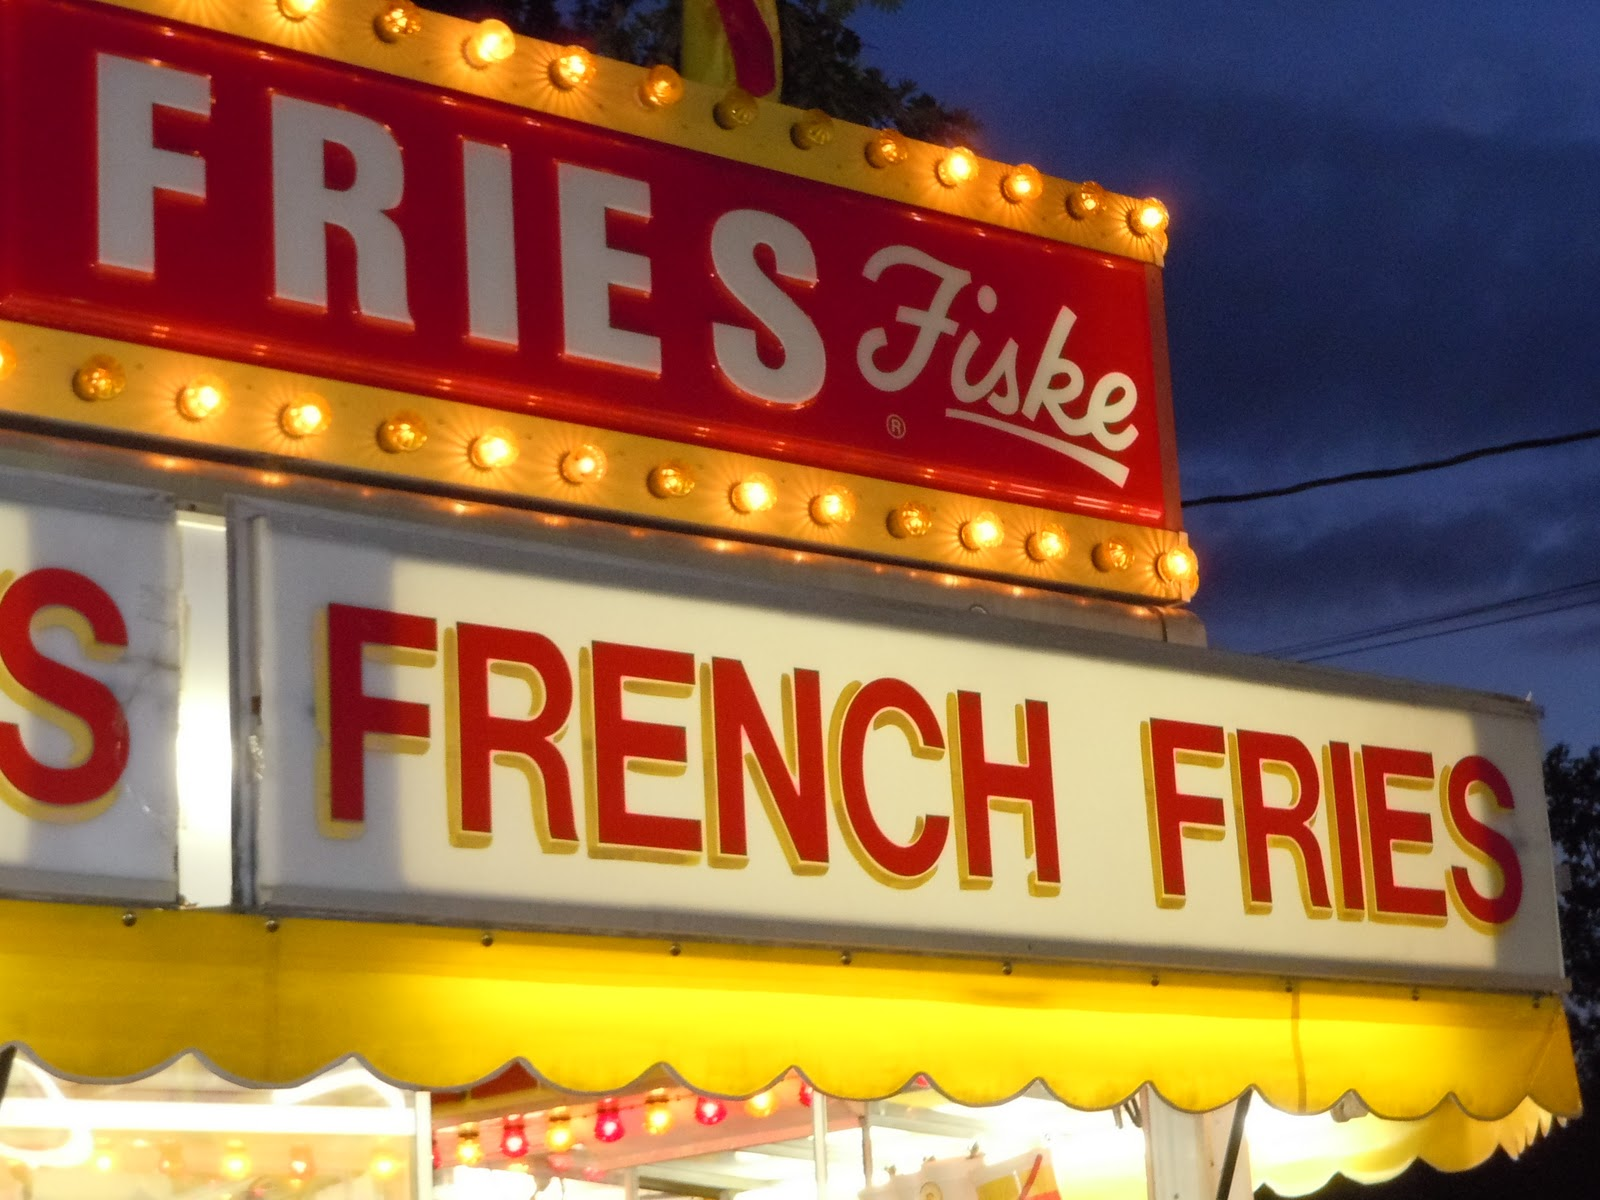 Night view of fair signs advertising Fiske French Fries